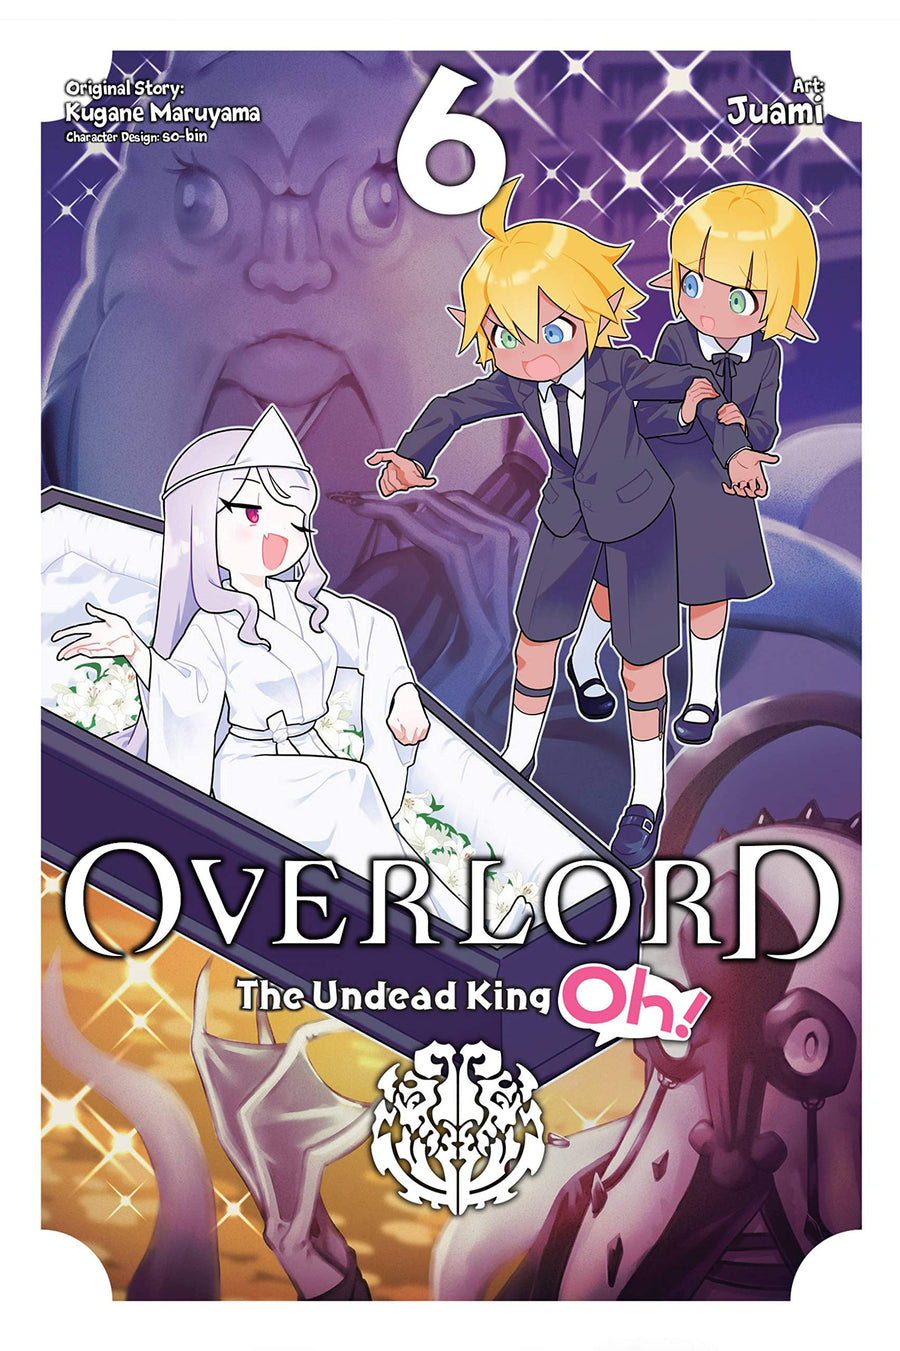 Overlord Undead King Oh Volume 6